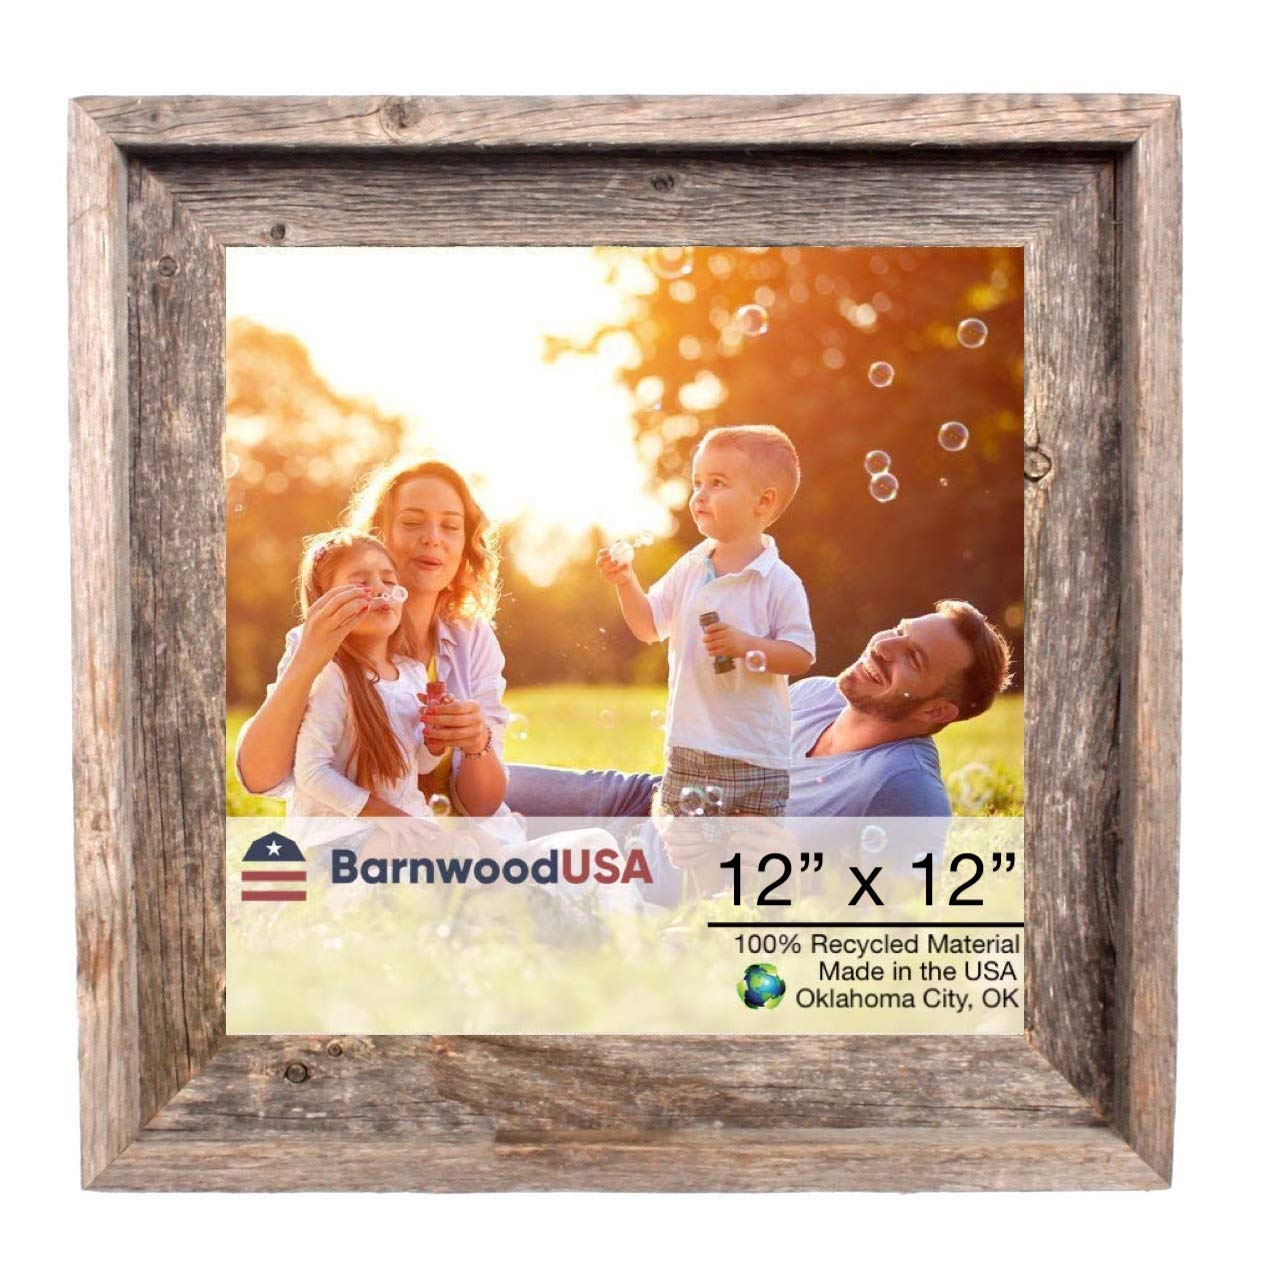 BarnwoodUSA Rustic Farmhouse Signature Picture Frame - Our 12x12 Picture Frame can be Mounted Horizontally or Vertically and is Crafted from 100% Recycled and Reclaimed Wood | No Assembly Required by BarnwoodUSA